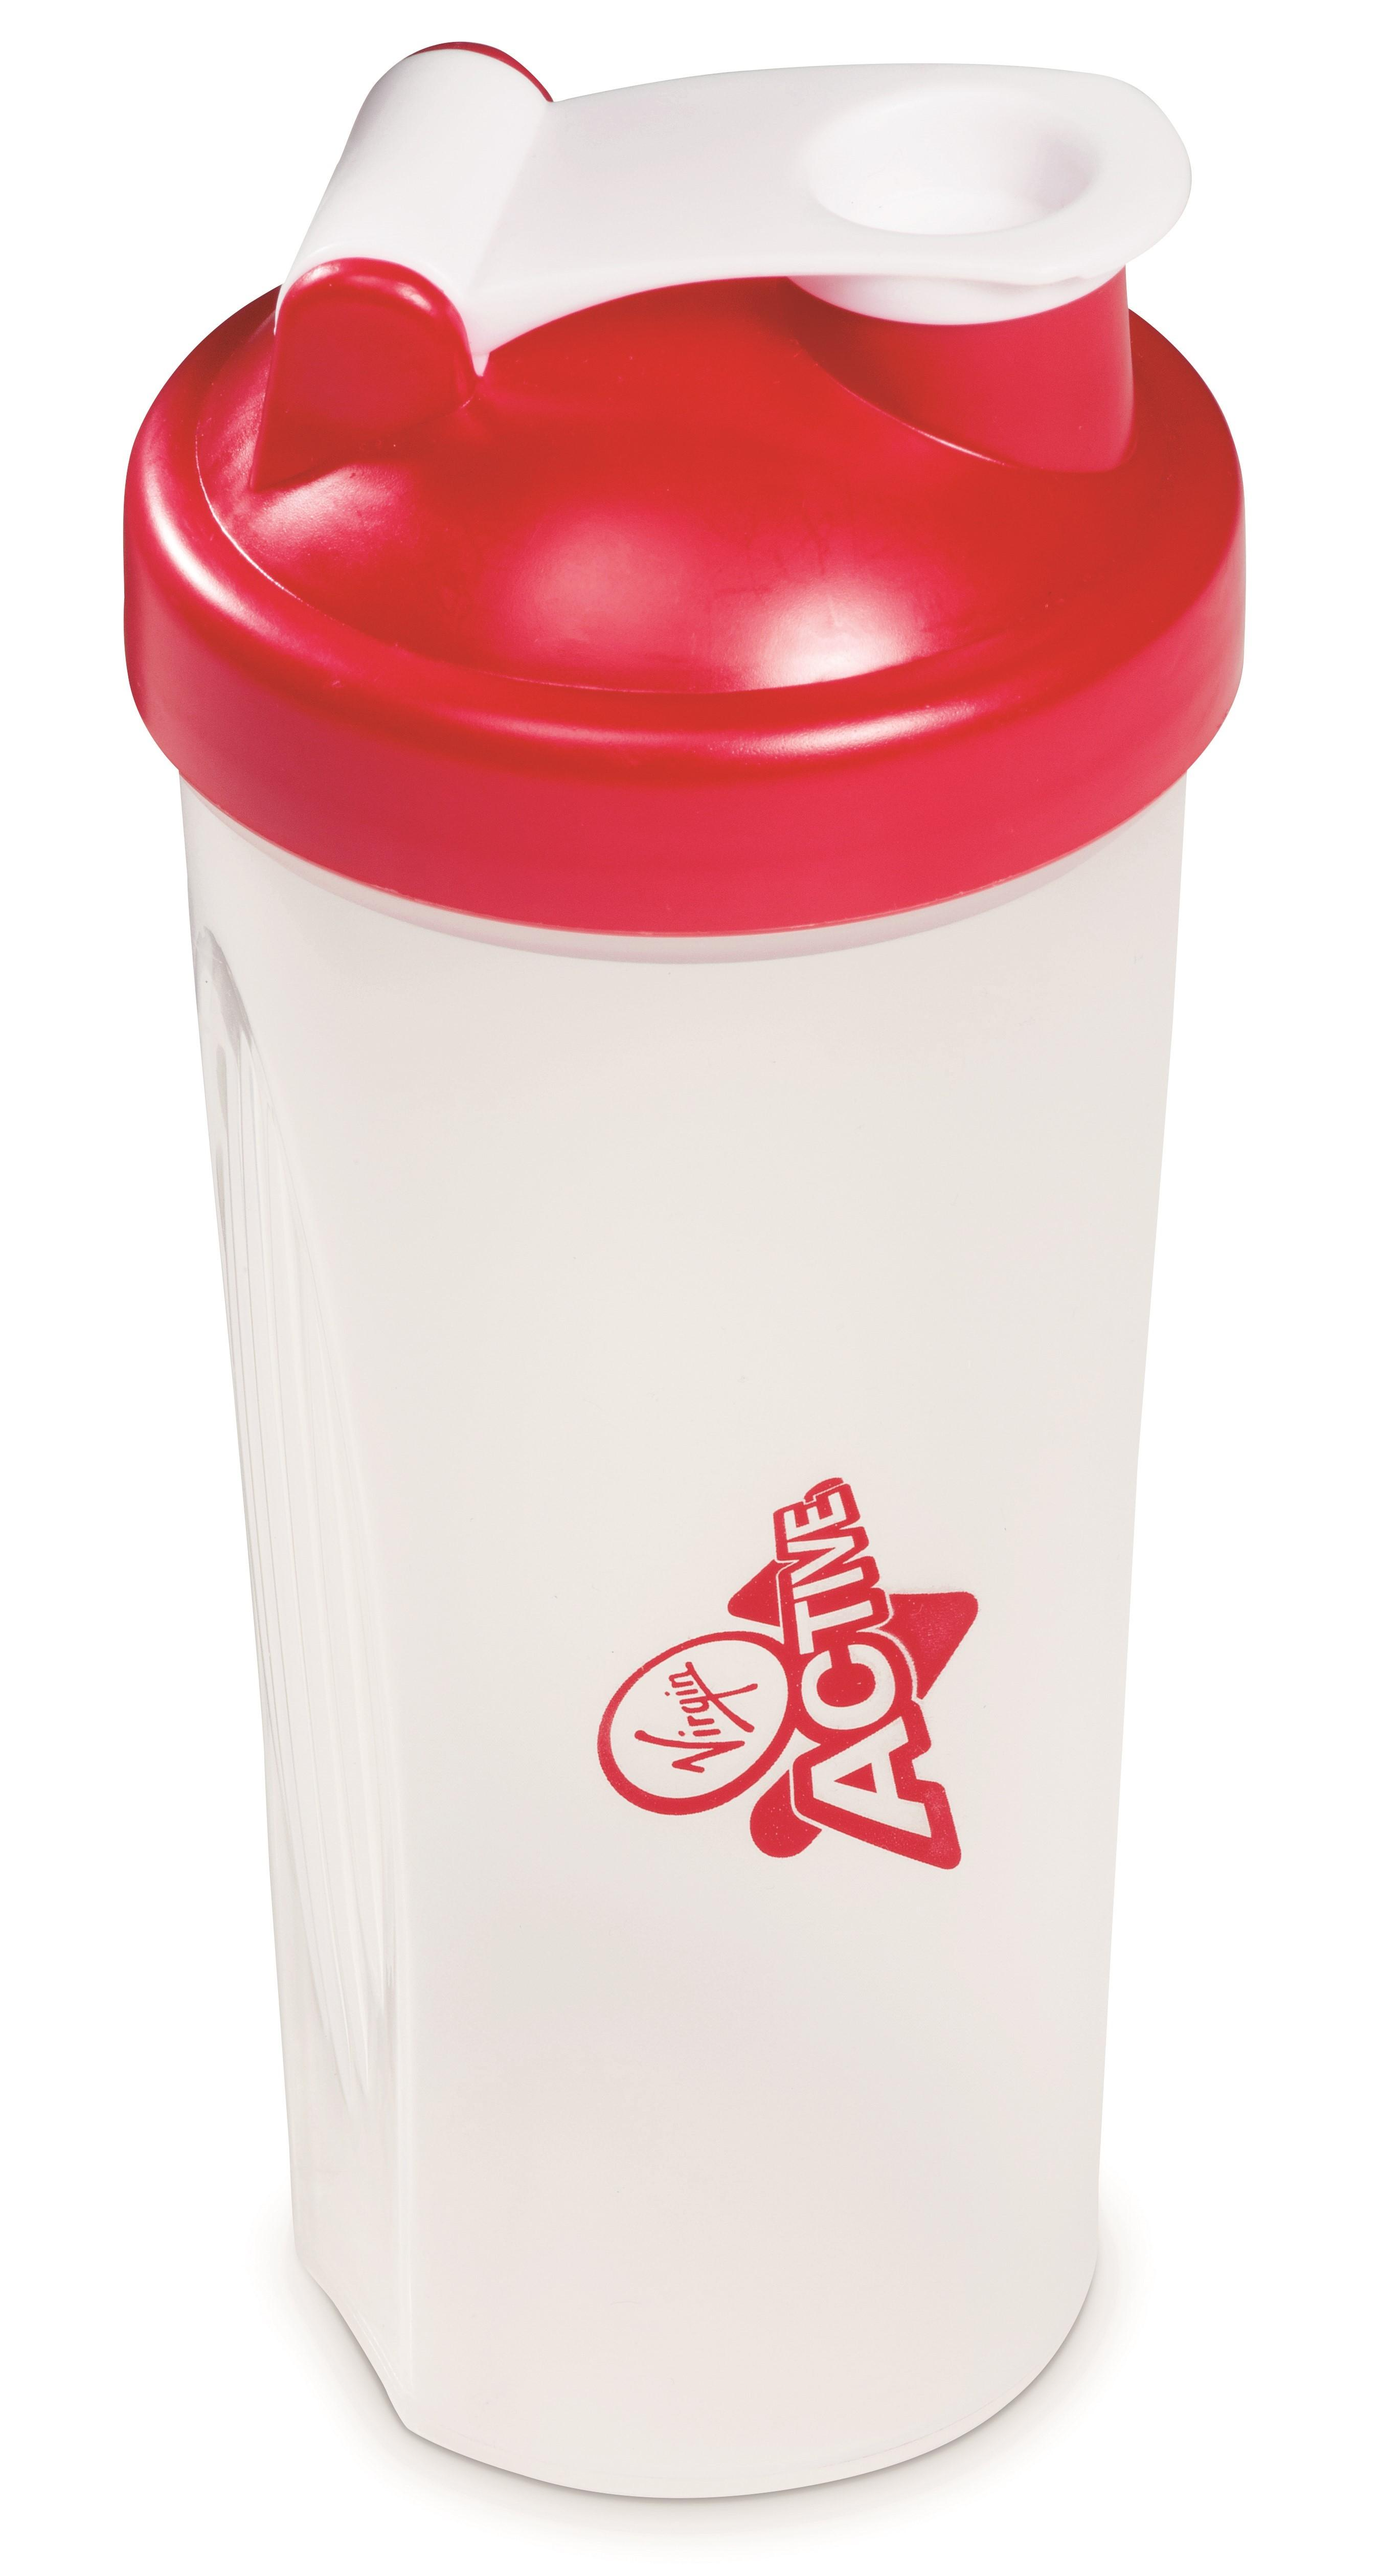 Quaker Protein Shaker - 600ml - Red Only